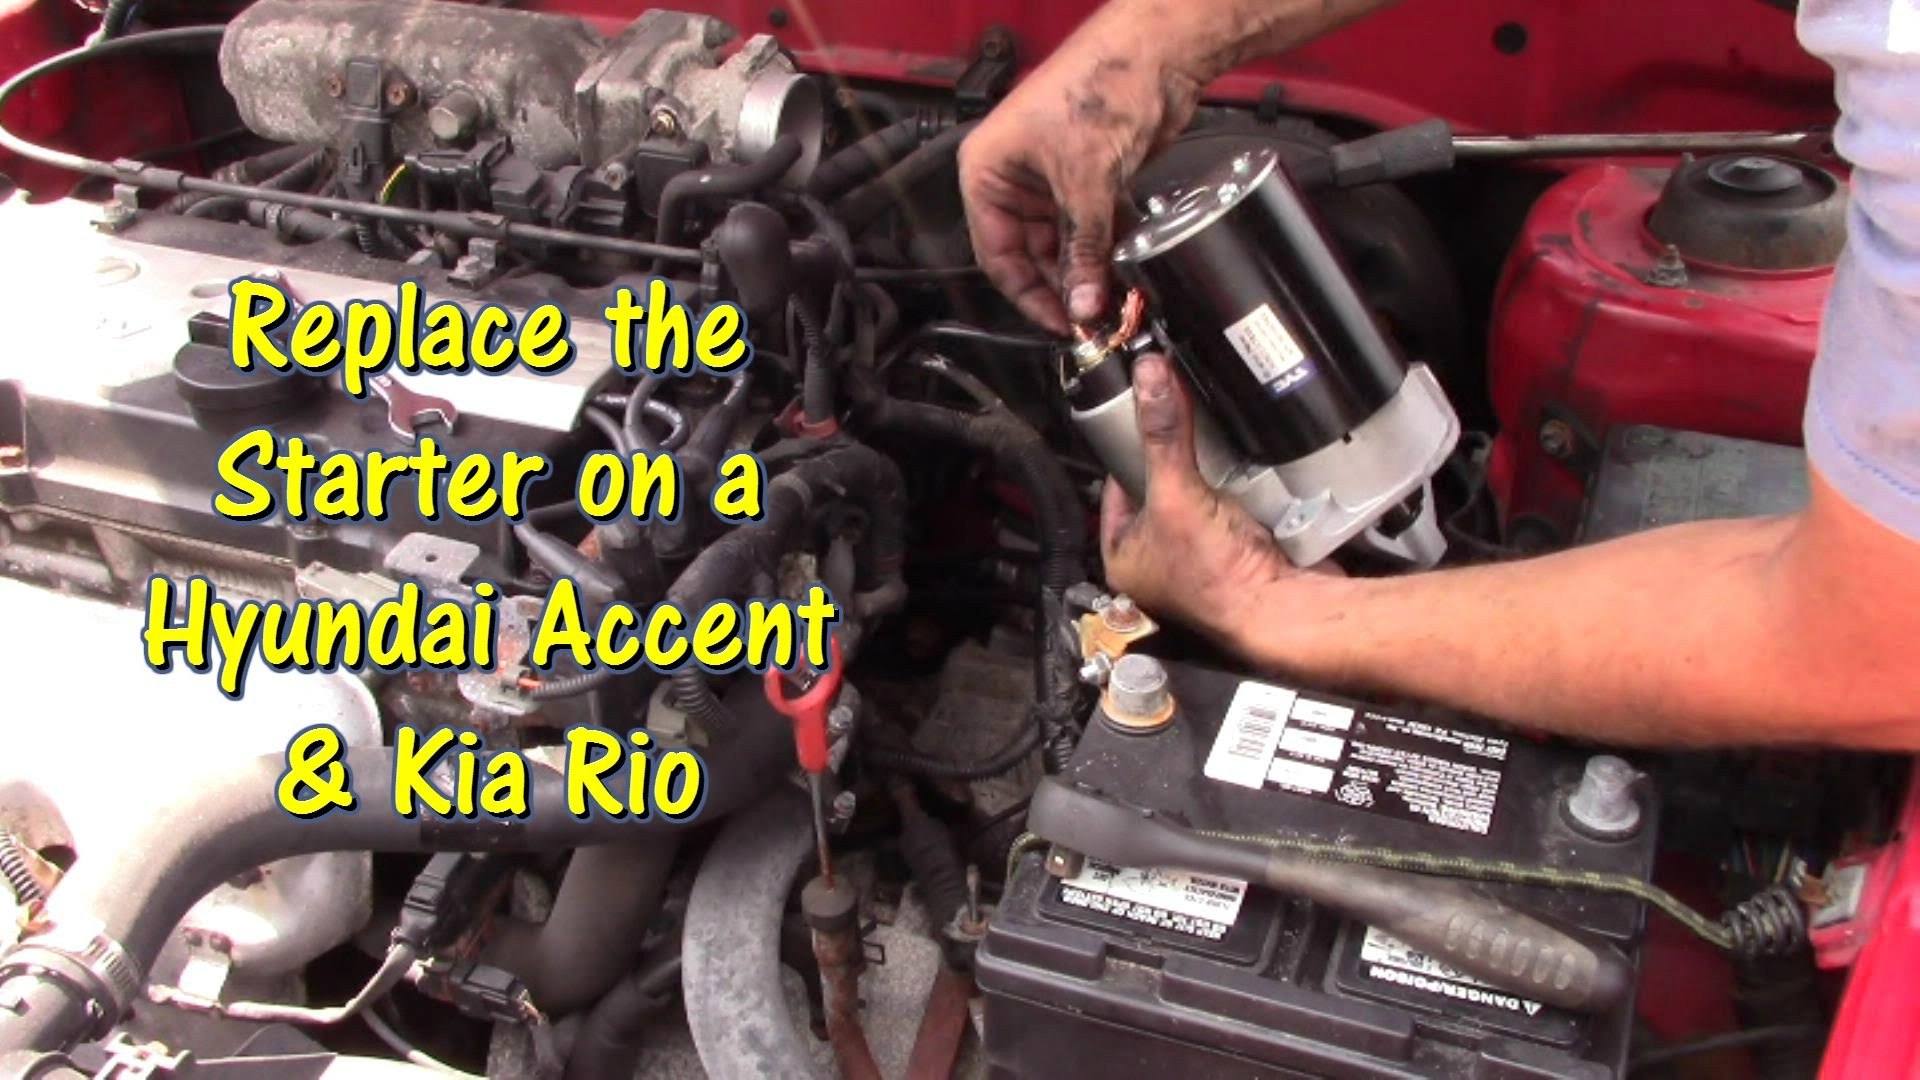 2004 Hyundai Accent Engine Diagram Valve Cover Gasket My Kia How To Replace A Starter On